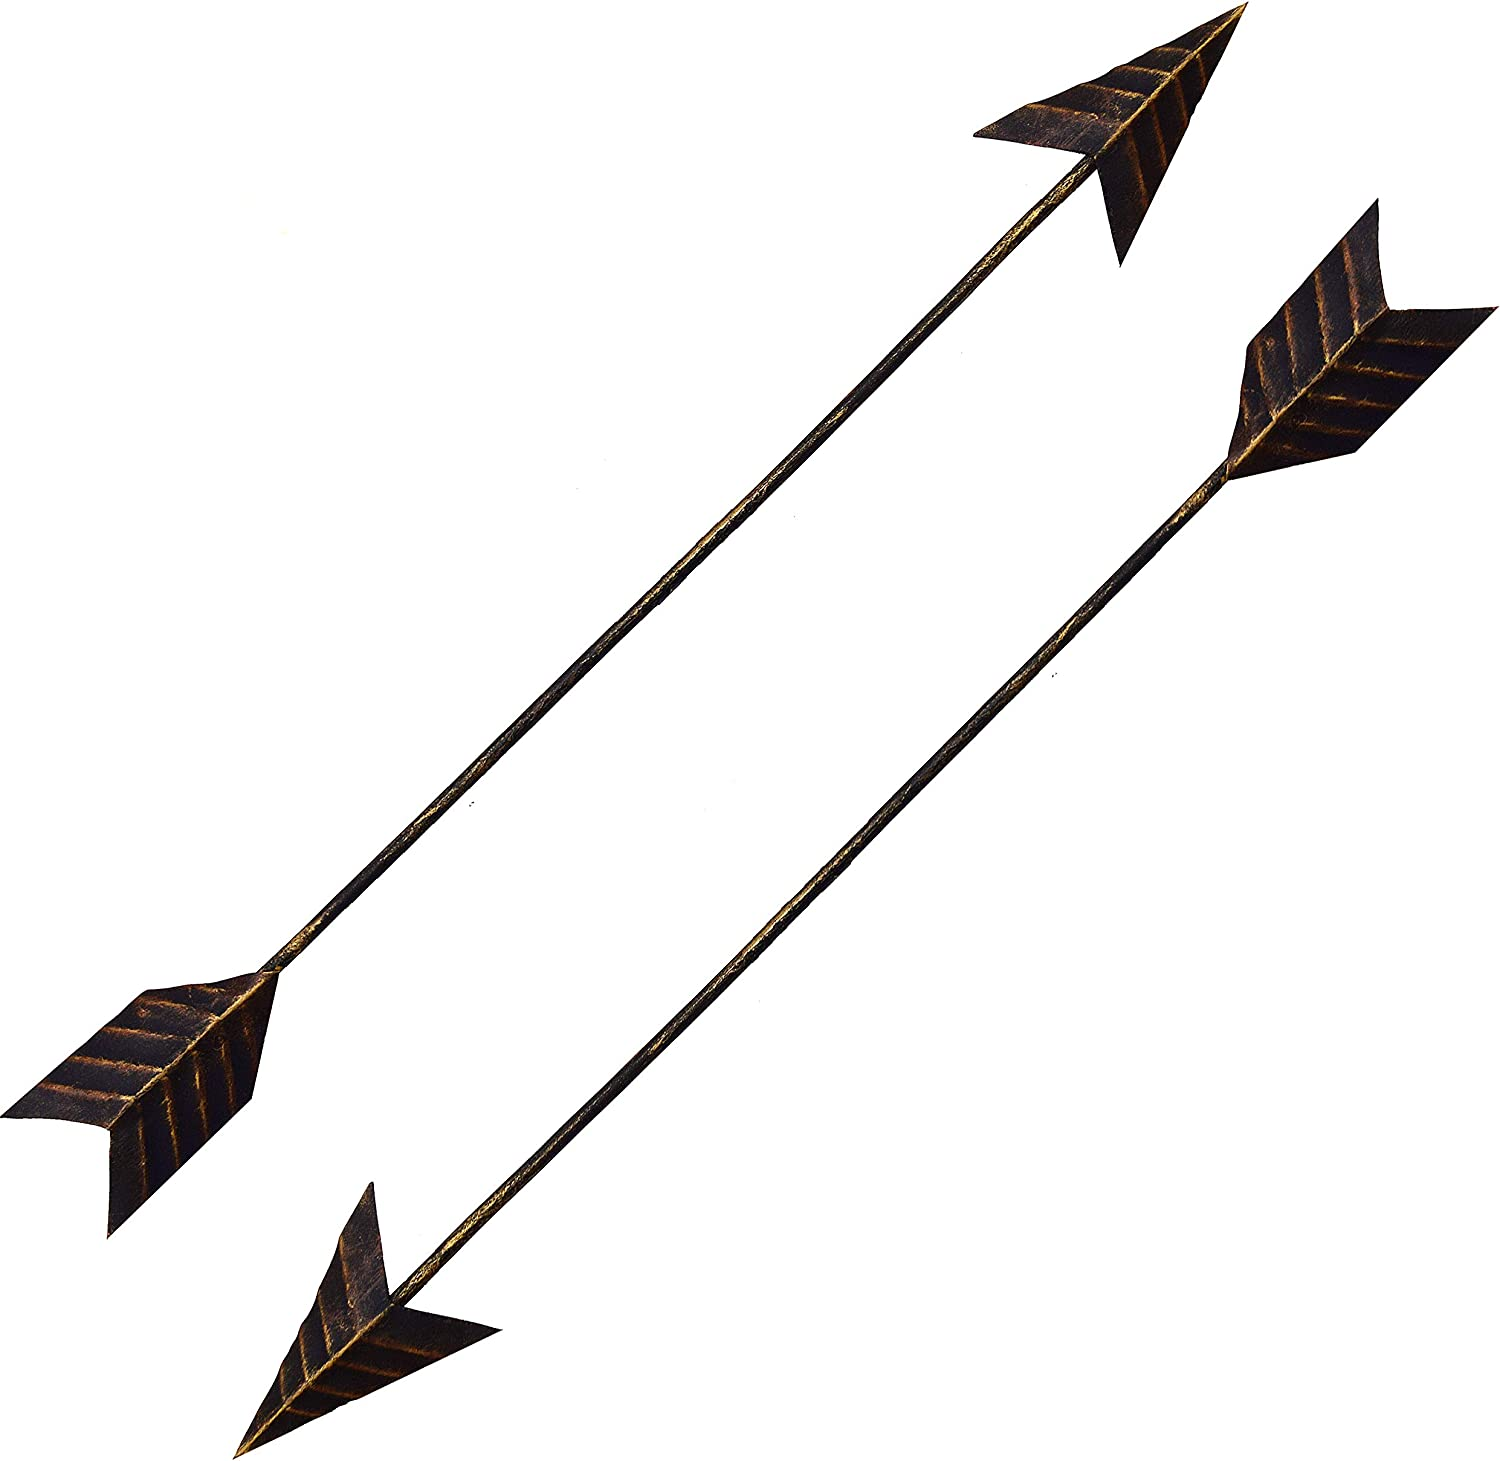 Crafia Cast Iron Native American Metal Arrow Wall Decor | Handmade Farmhouse Decor and Ideas (2)